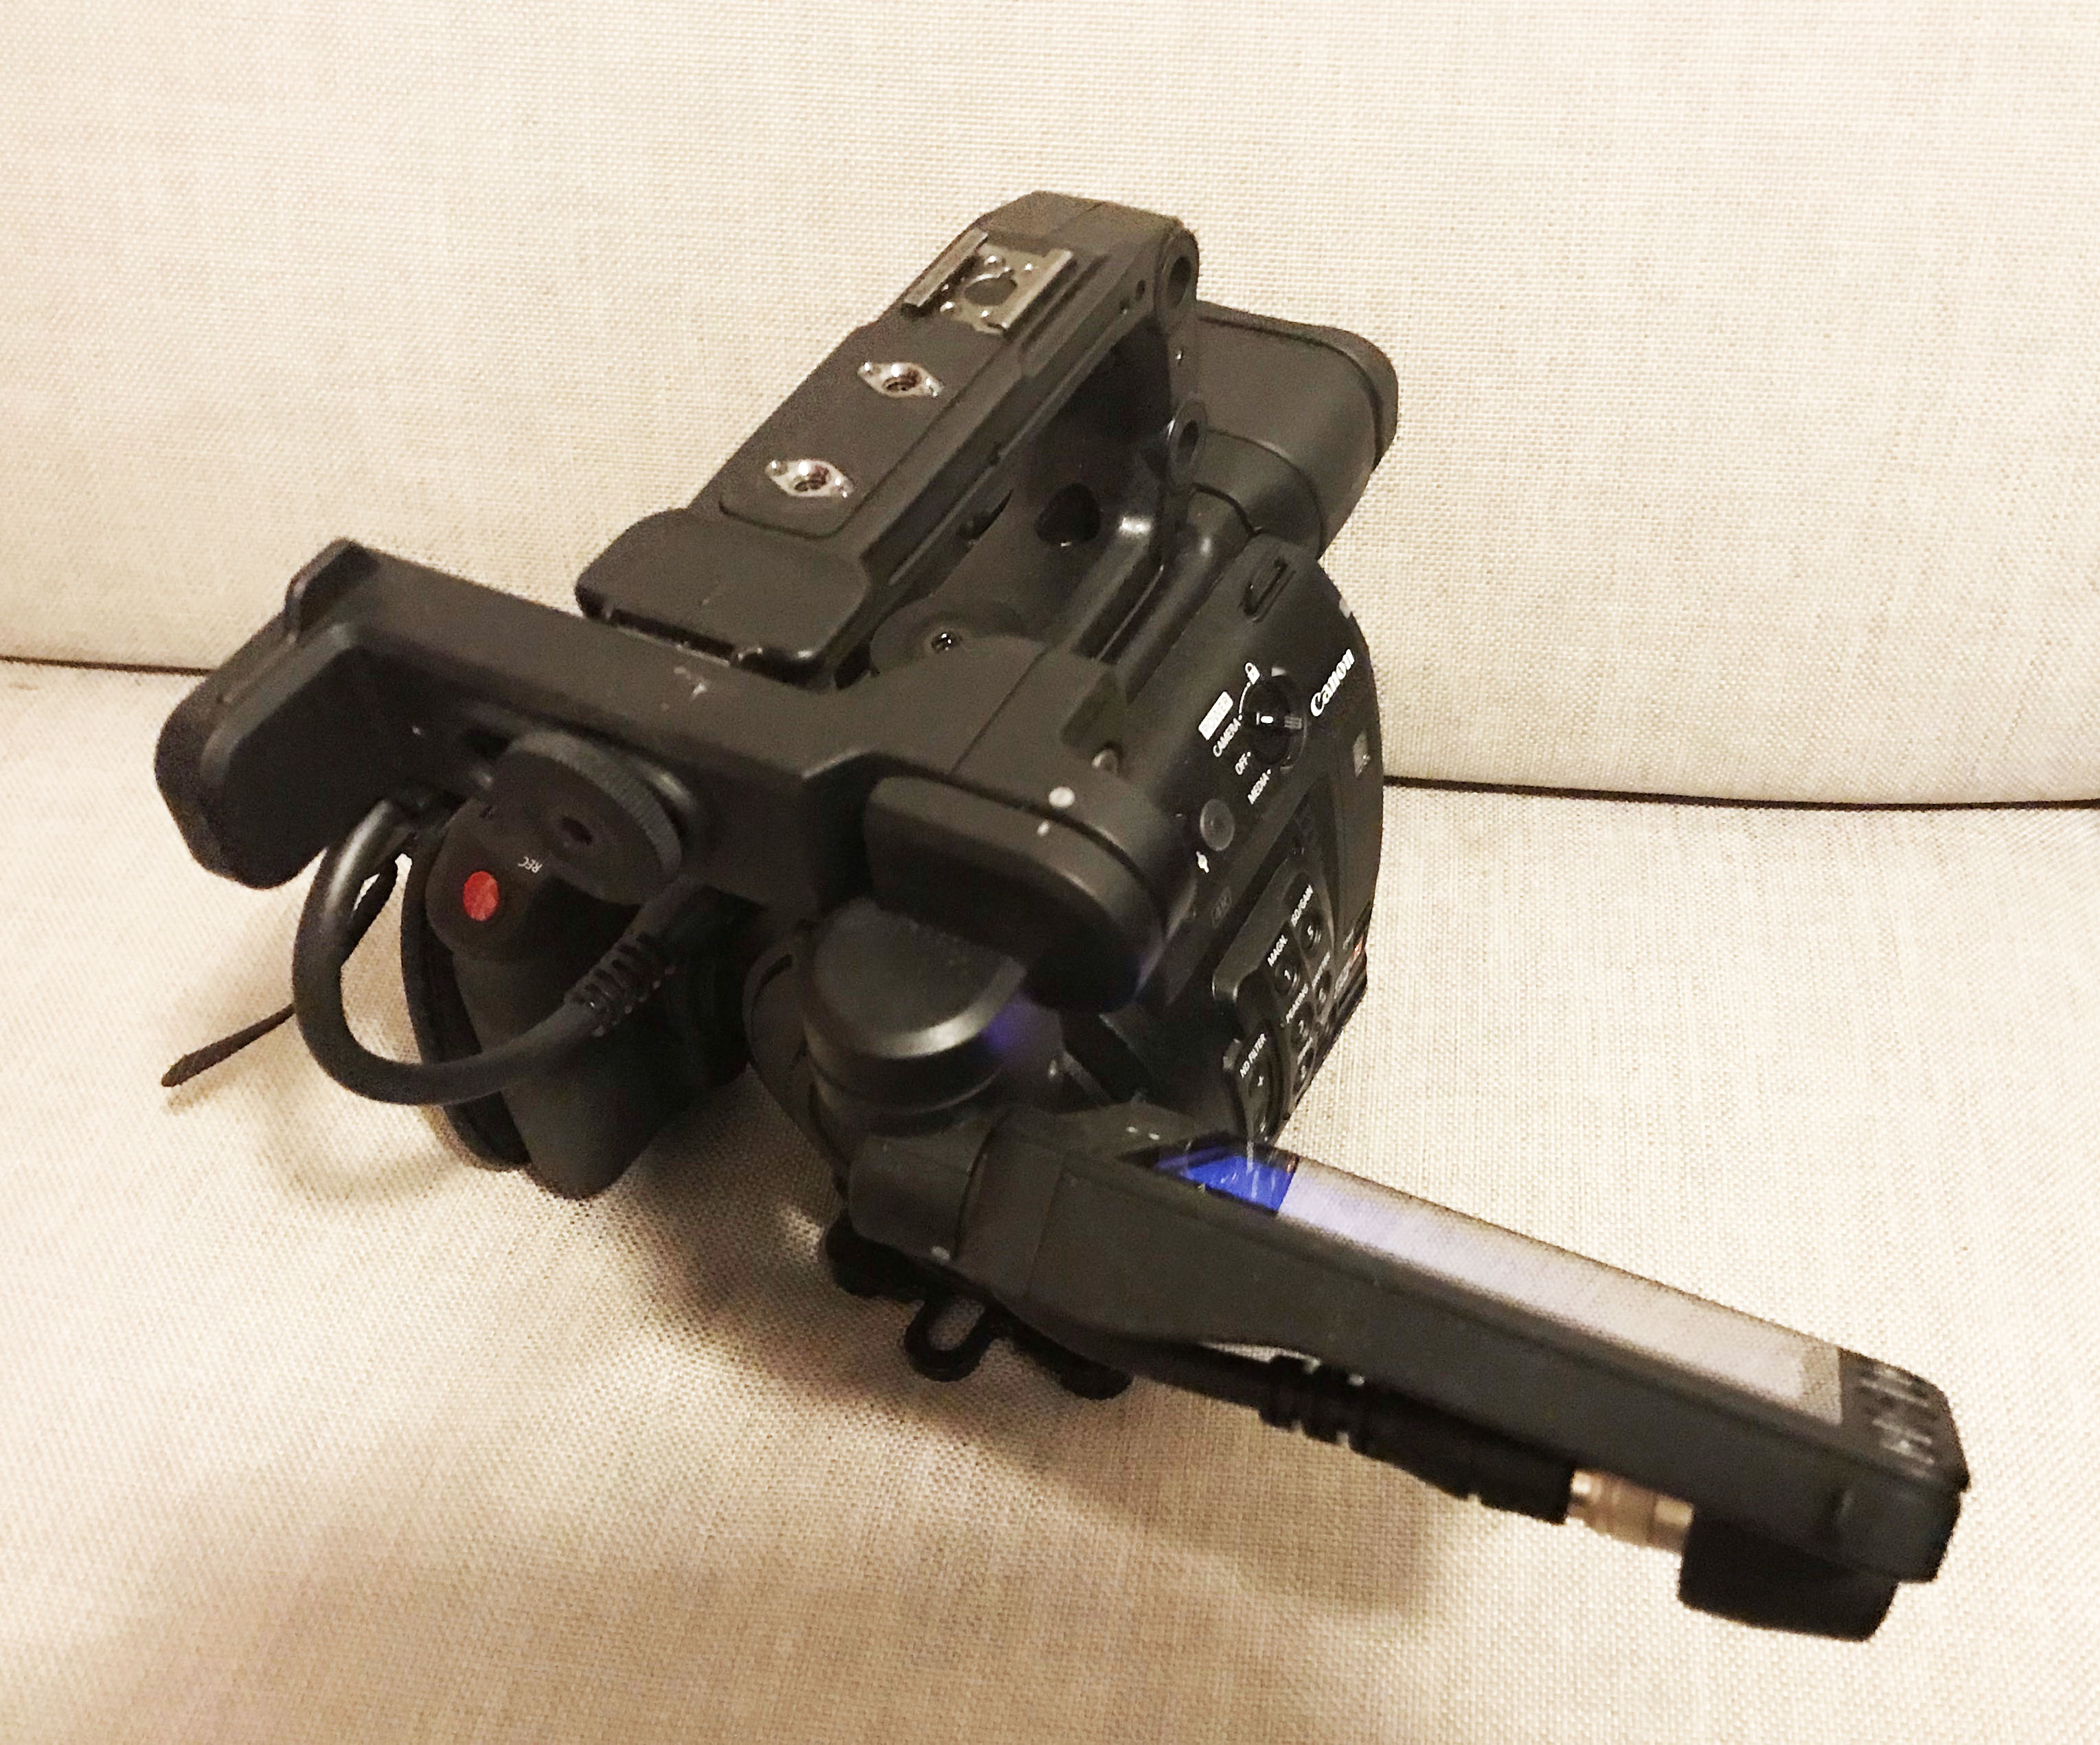 Canon - c200 - Canon c200 with 58 hours bought from CVP (id